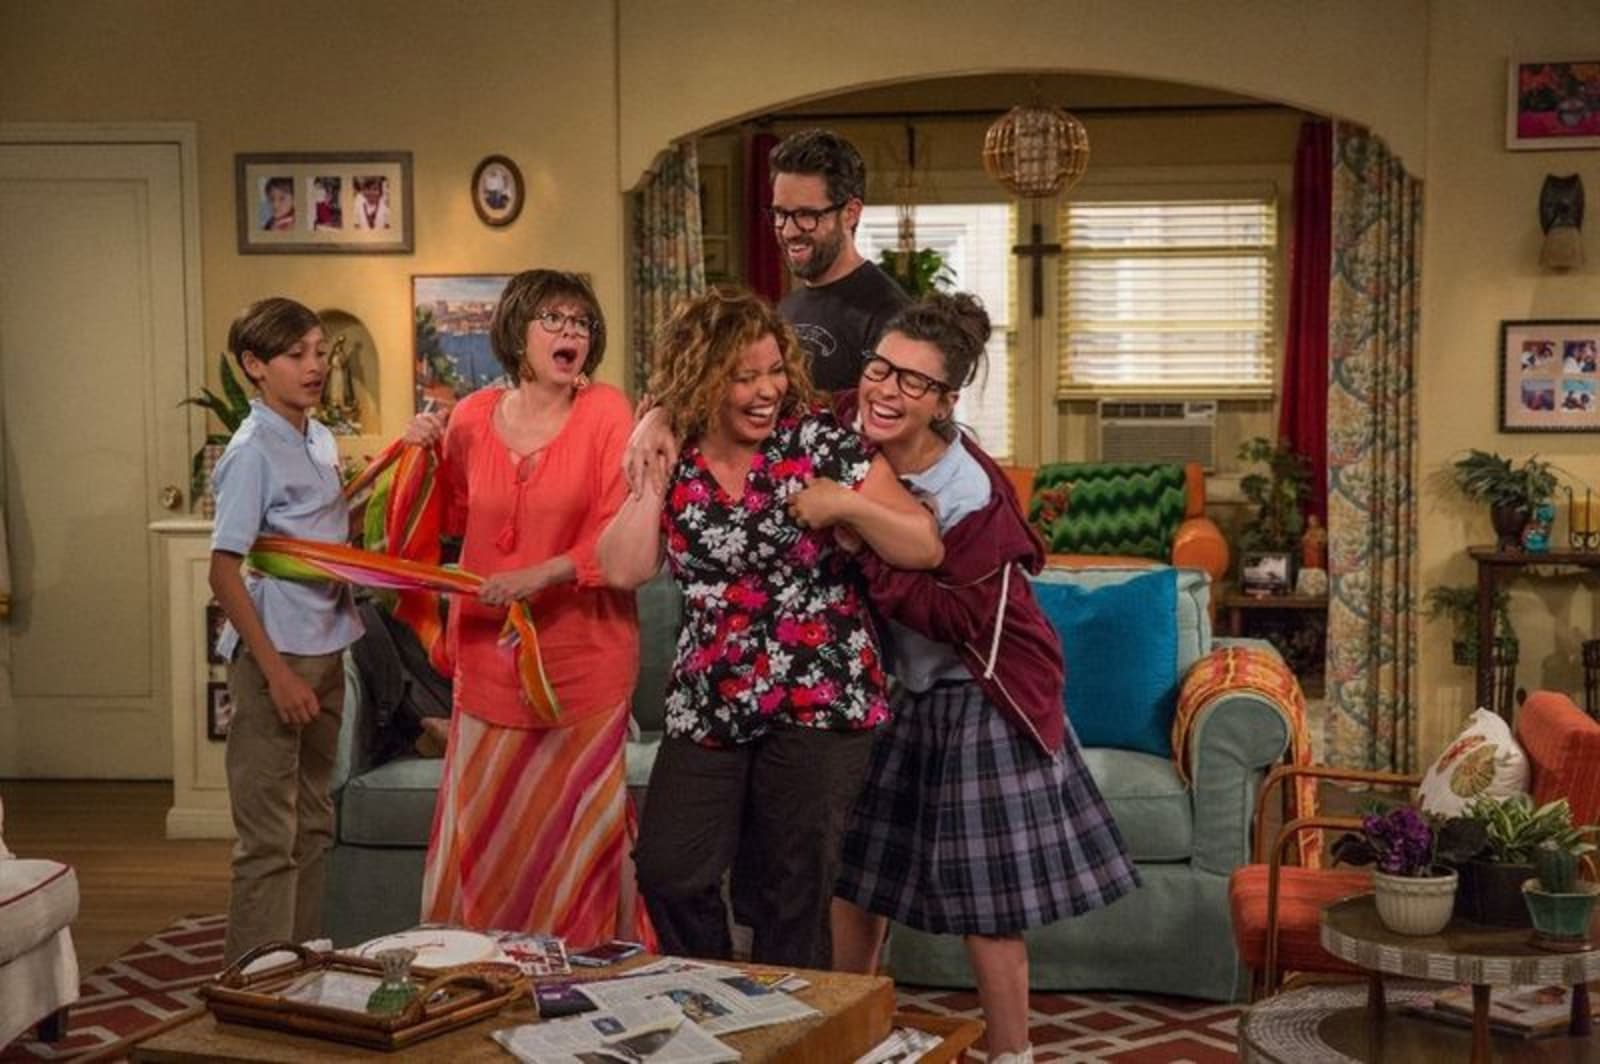 Netflix's 'One Day at a Time' gets saved from cancellation